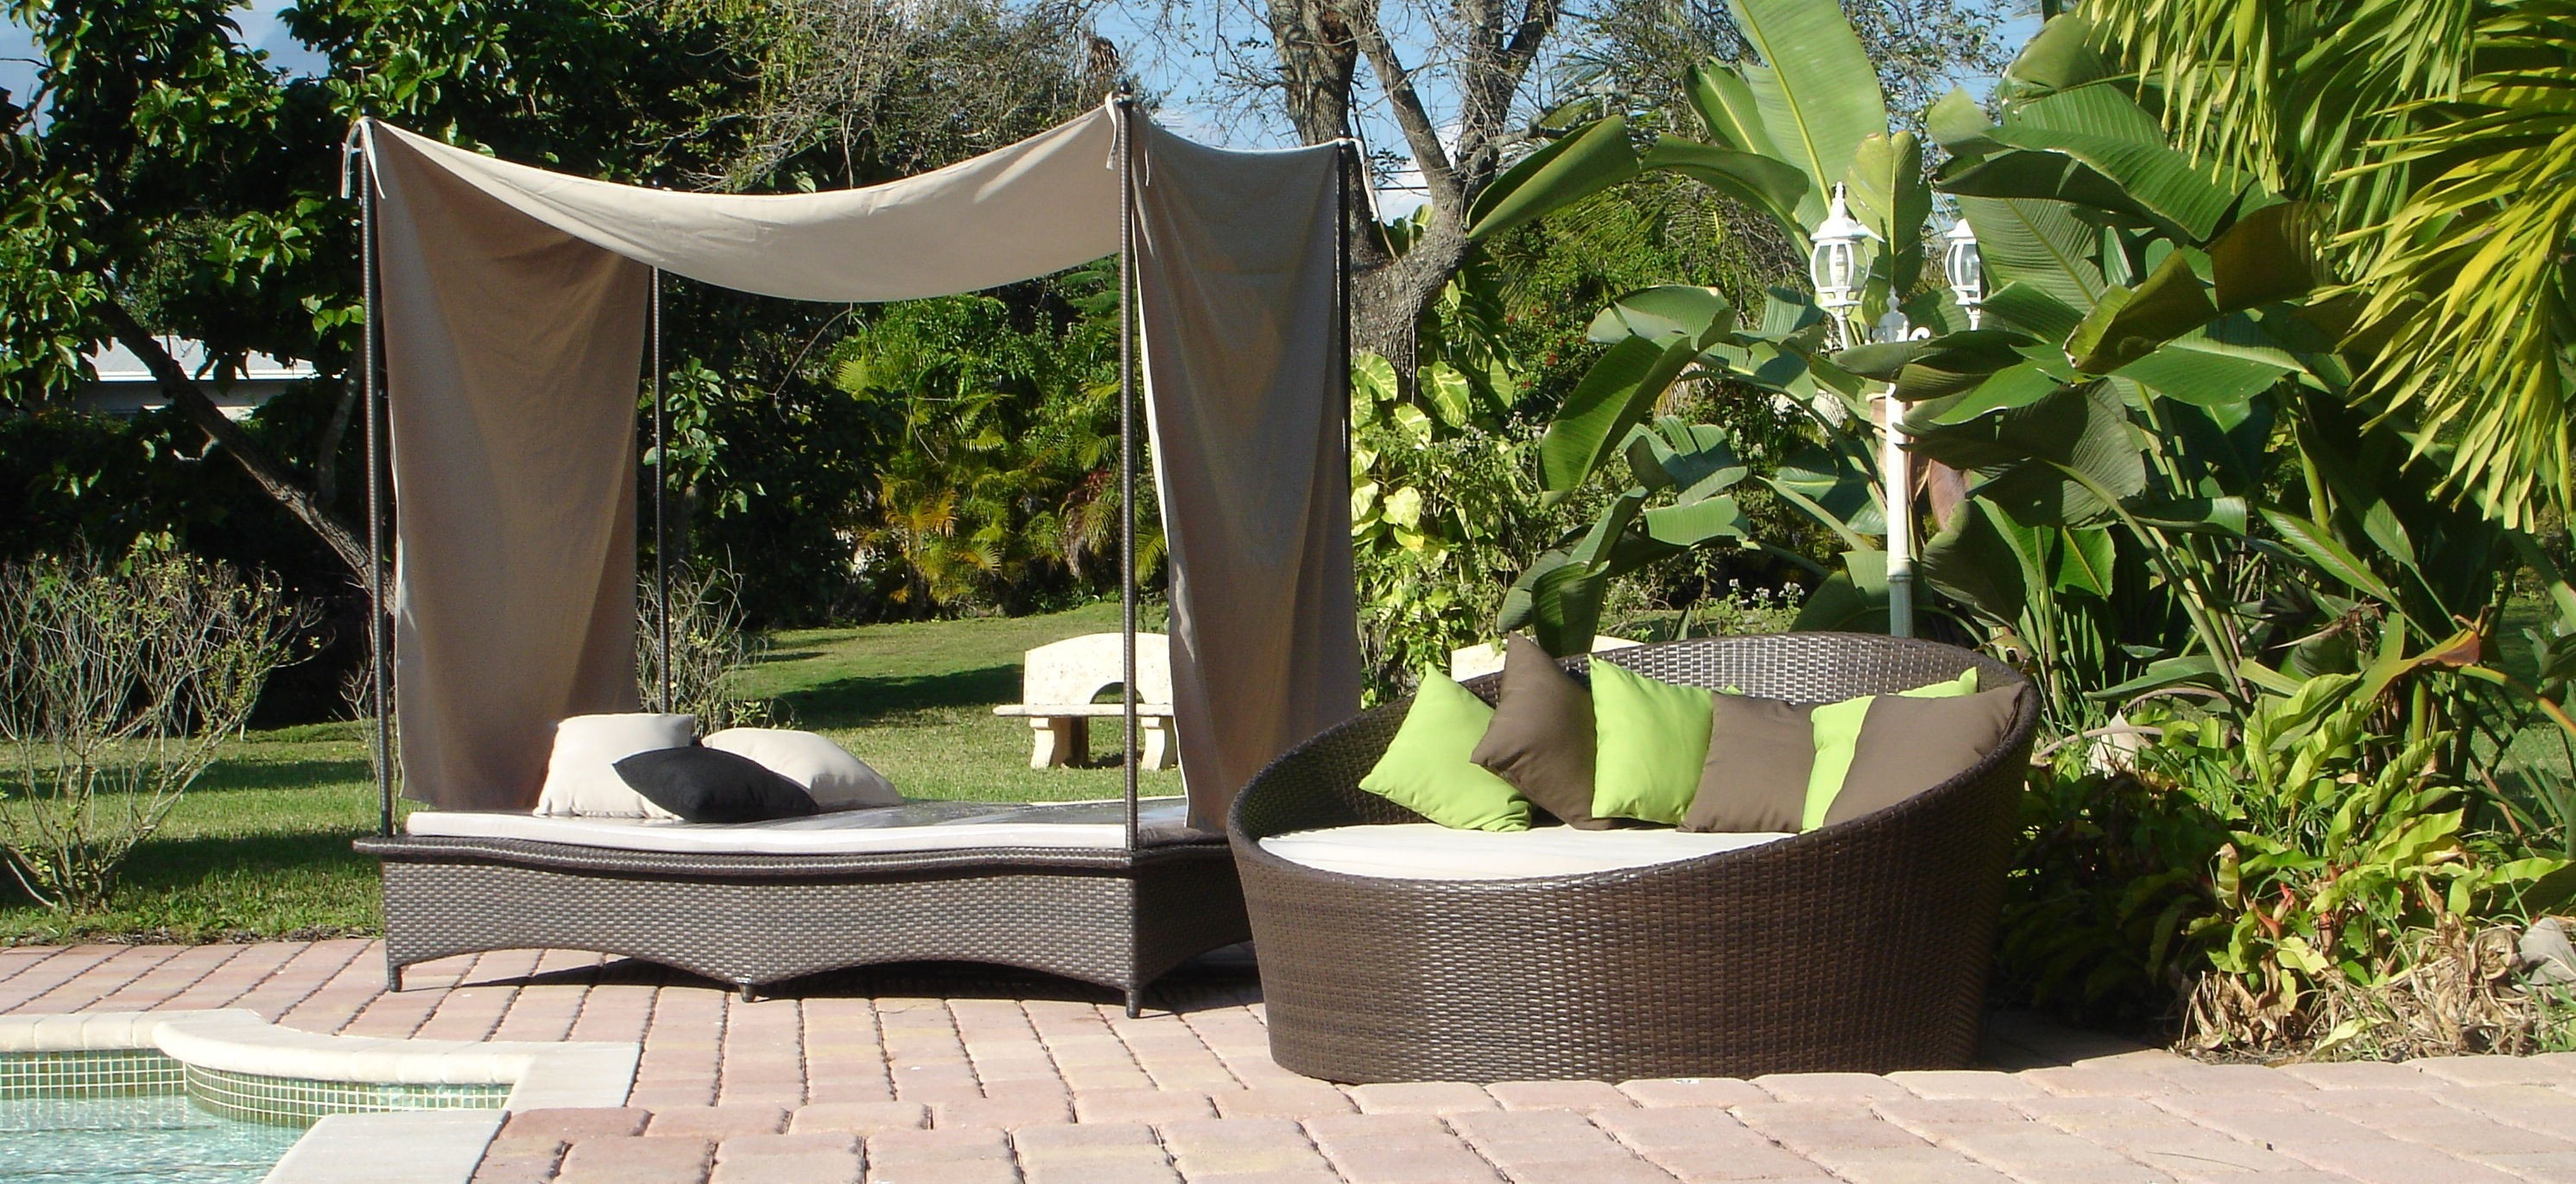 jaavan patio outdoor patio furniture u2022 patio ideas rh mikecounsilplumbing com javan patio furniture jaavan patio furniture coconut grove